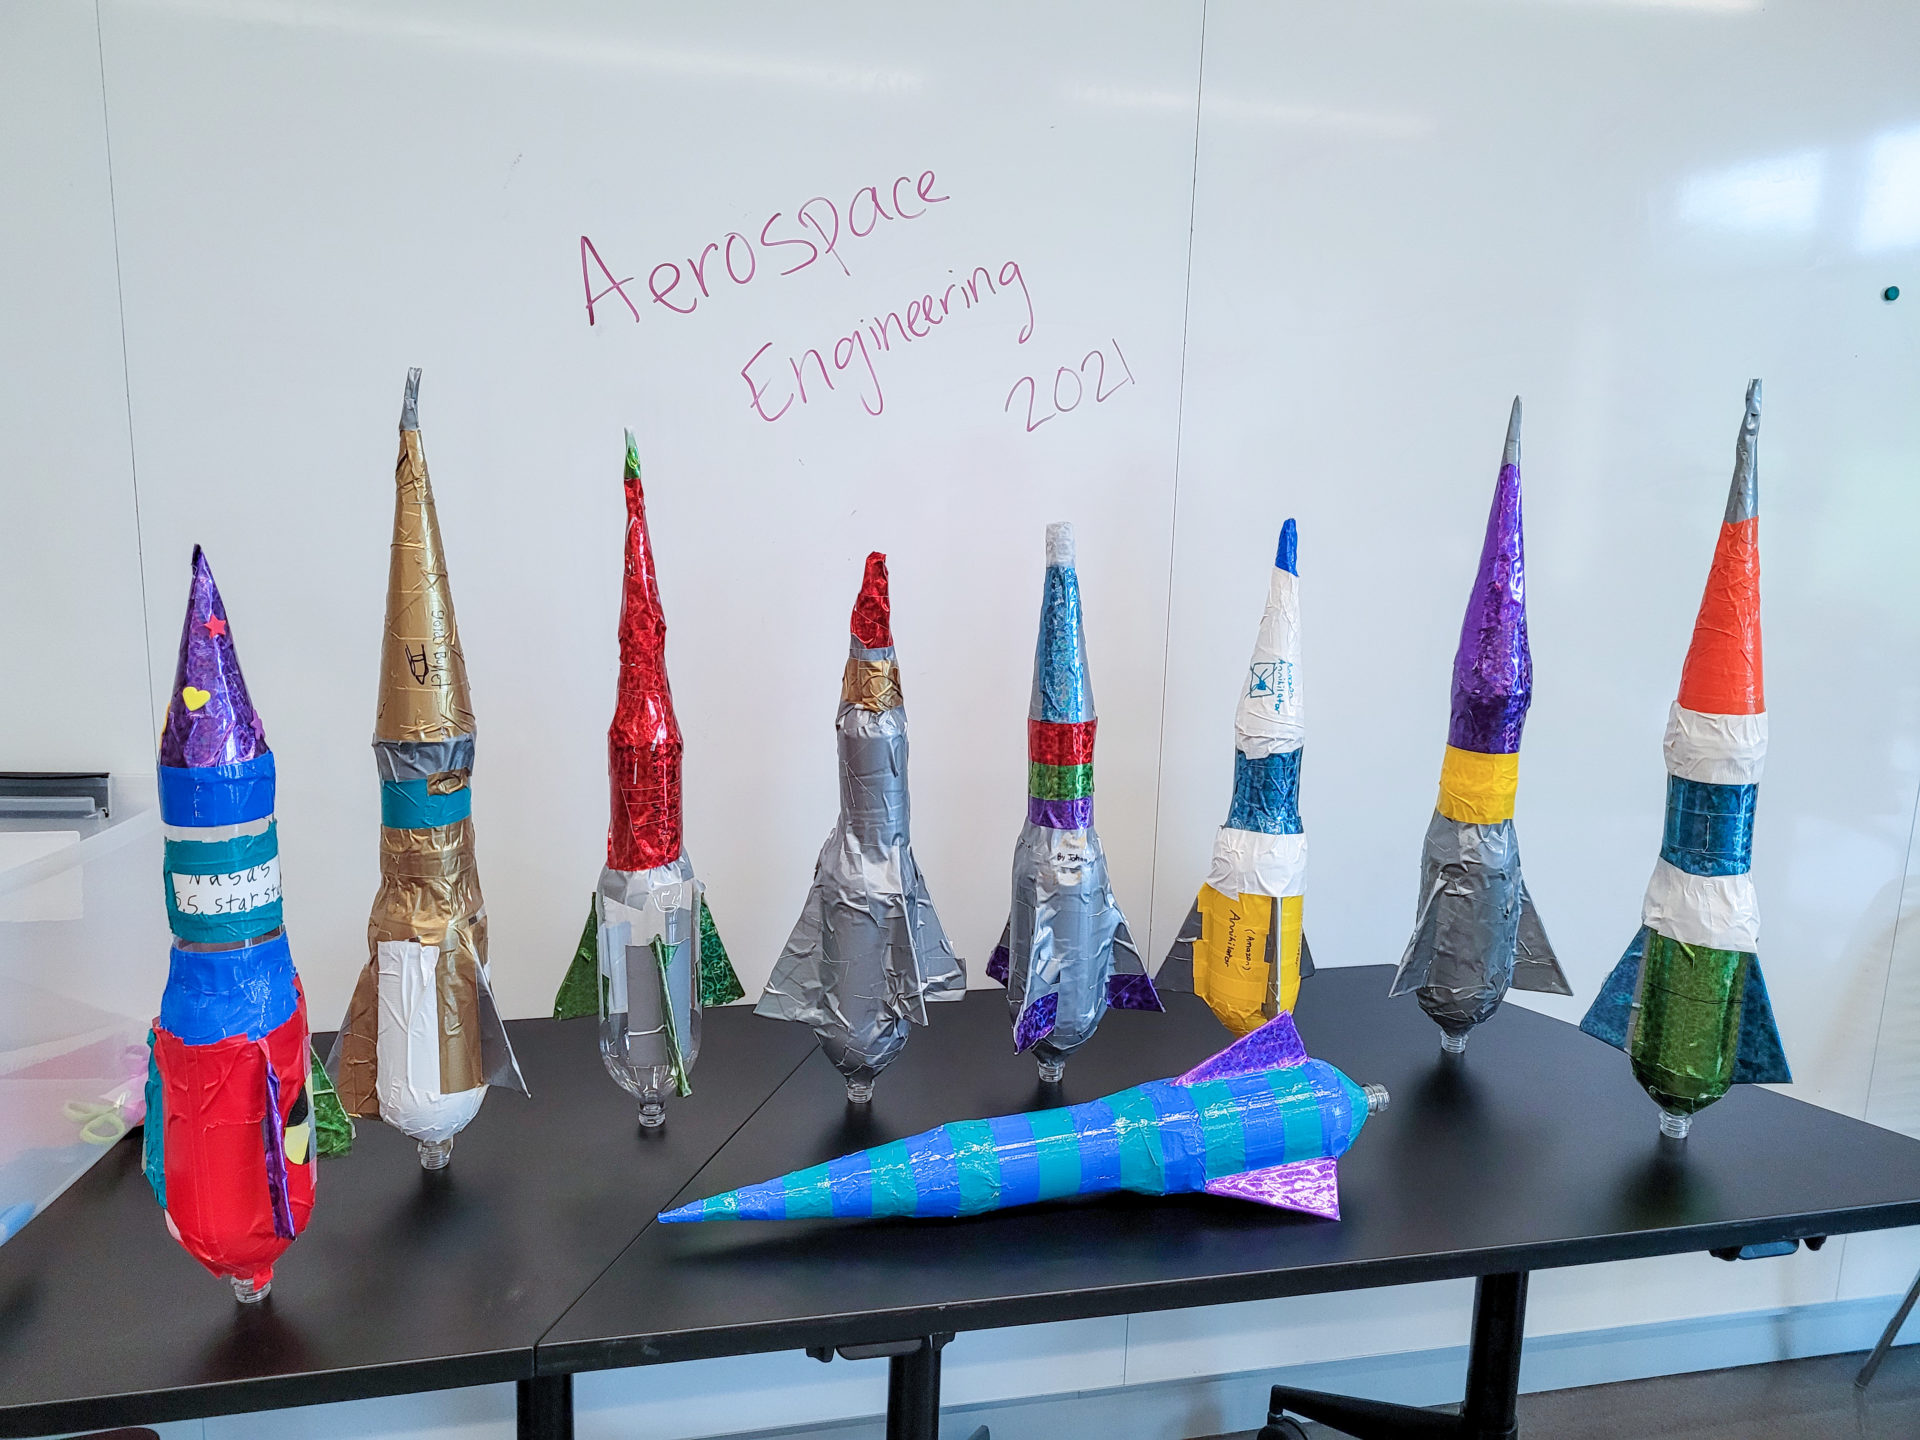 9 bottle rockets on a table in front of text that reads: Aerospace Engineering